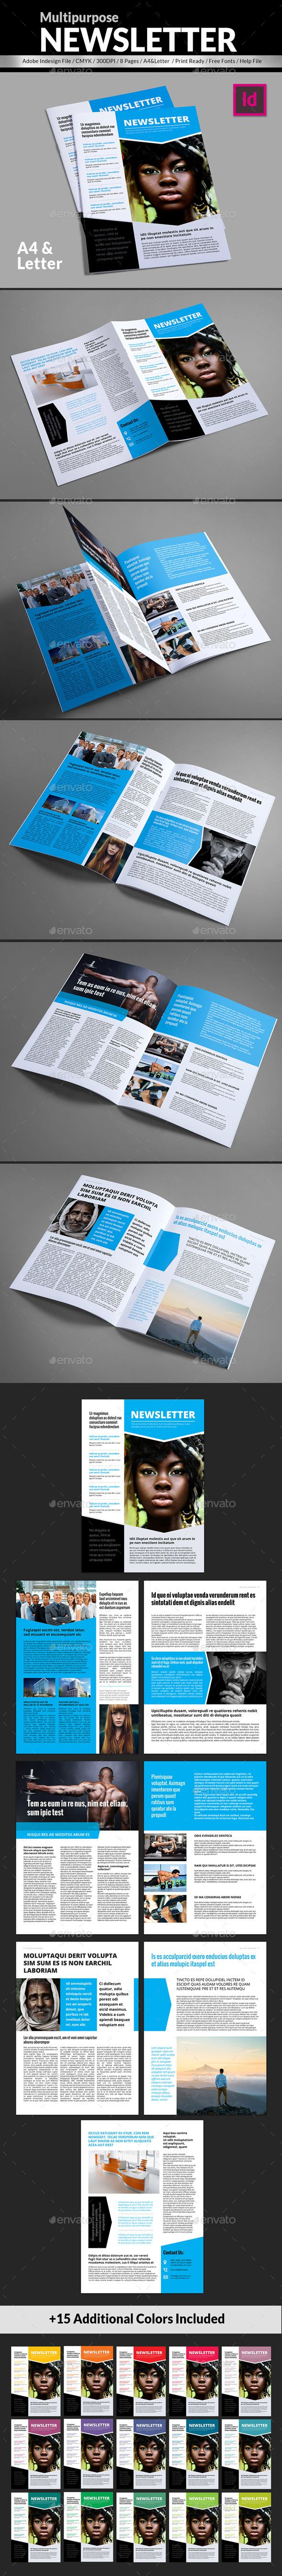 General Newsletter Template - Newsletters Print Templates Download here : https://graphicriver.net/item/general-newsletter-template/19649478?s_rank=3&ref=Al-fatih